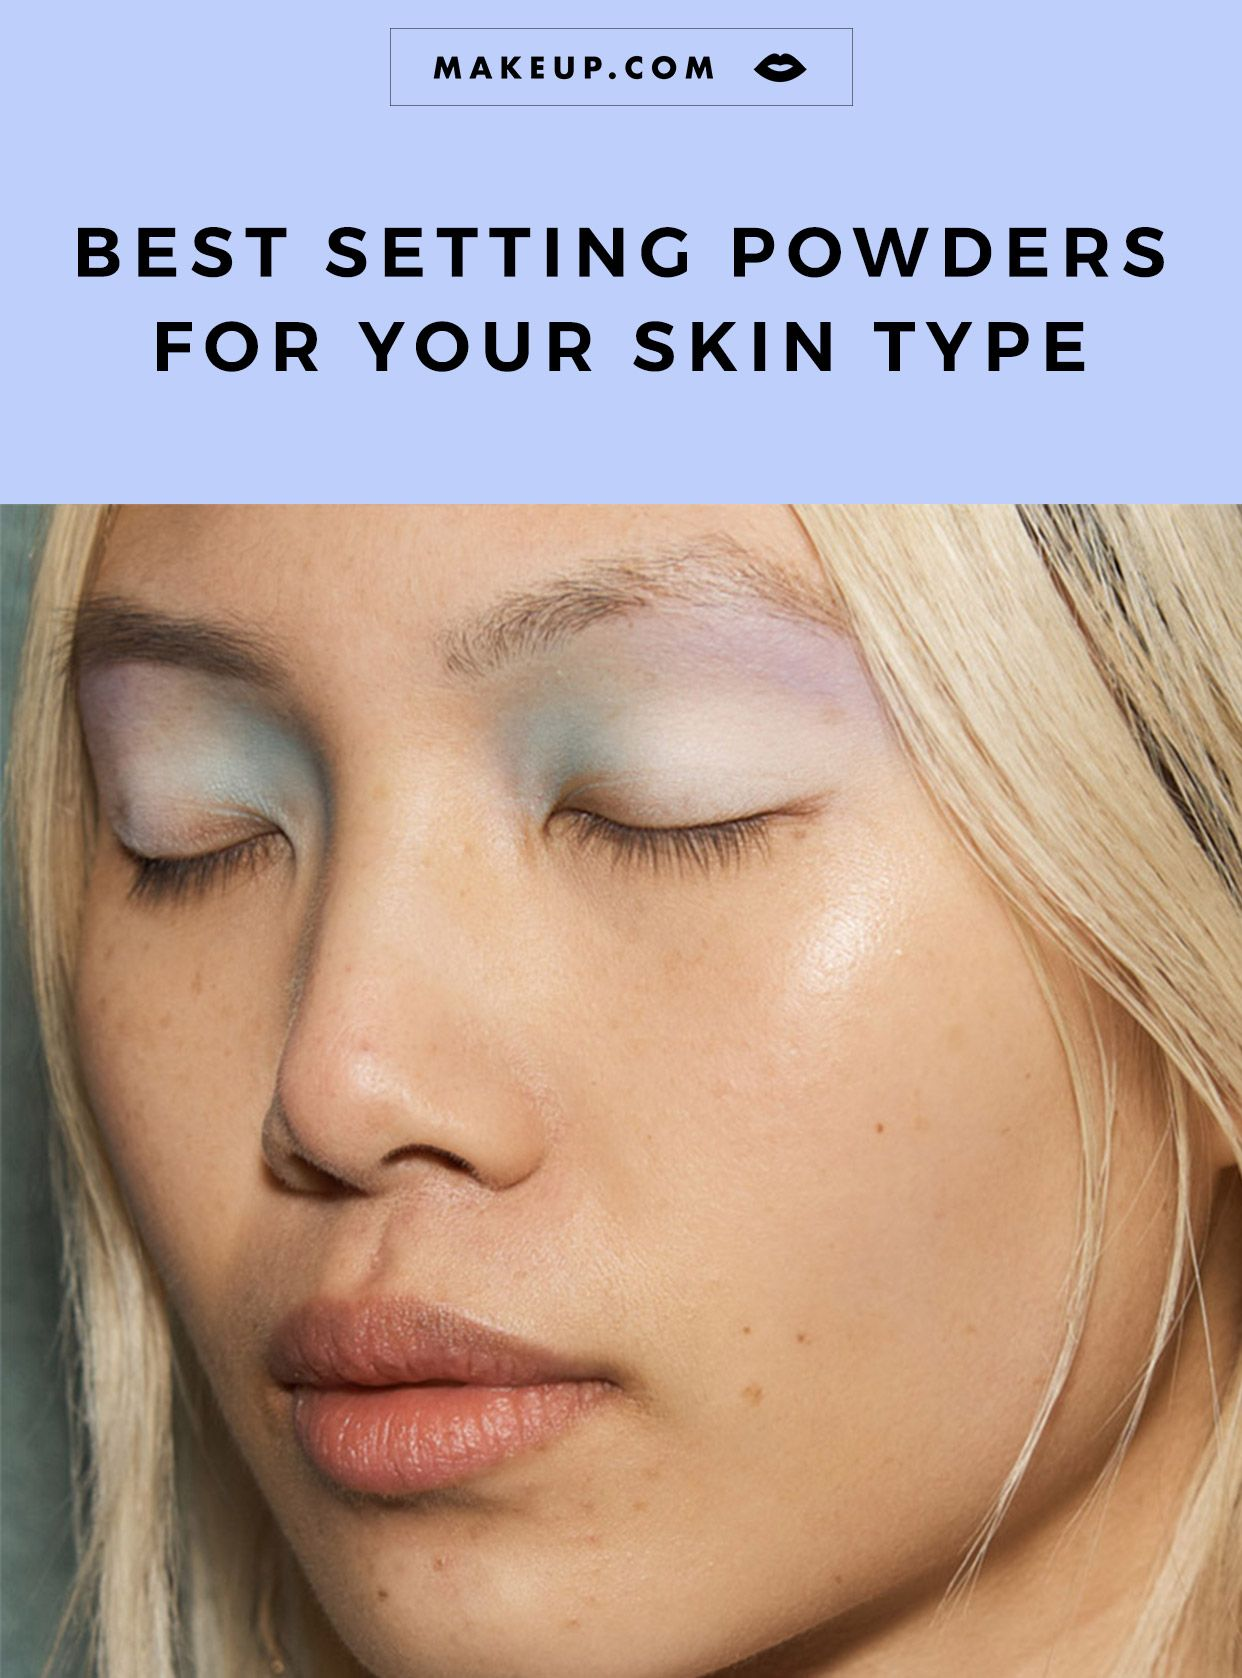 Pimple under nose piercing  Best Setting Powders Your Skin Type  Beauty Guides  Pinterest